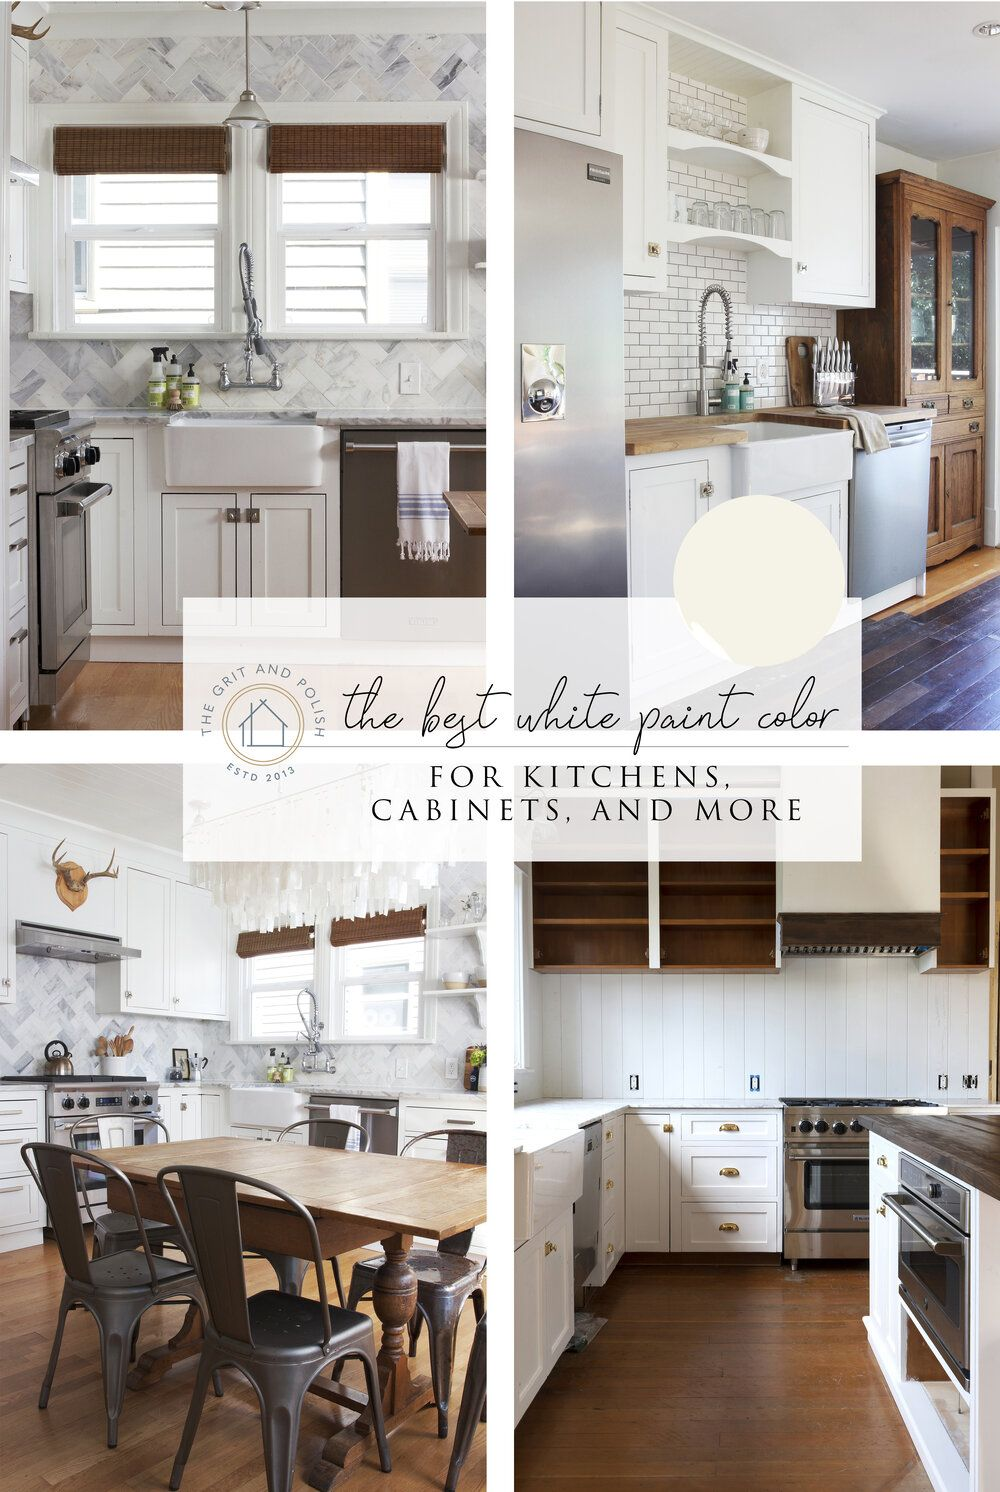 Our Favorite White Paint Color For Kitchens Cabinets The Grit And Polish Kitchen Paint Colors White Paint Colors White Kitchen Paint